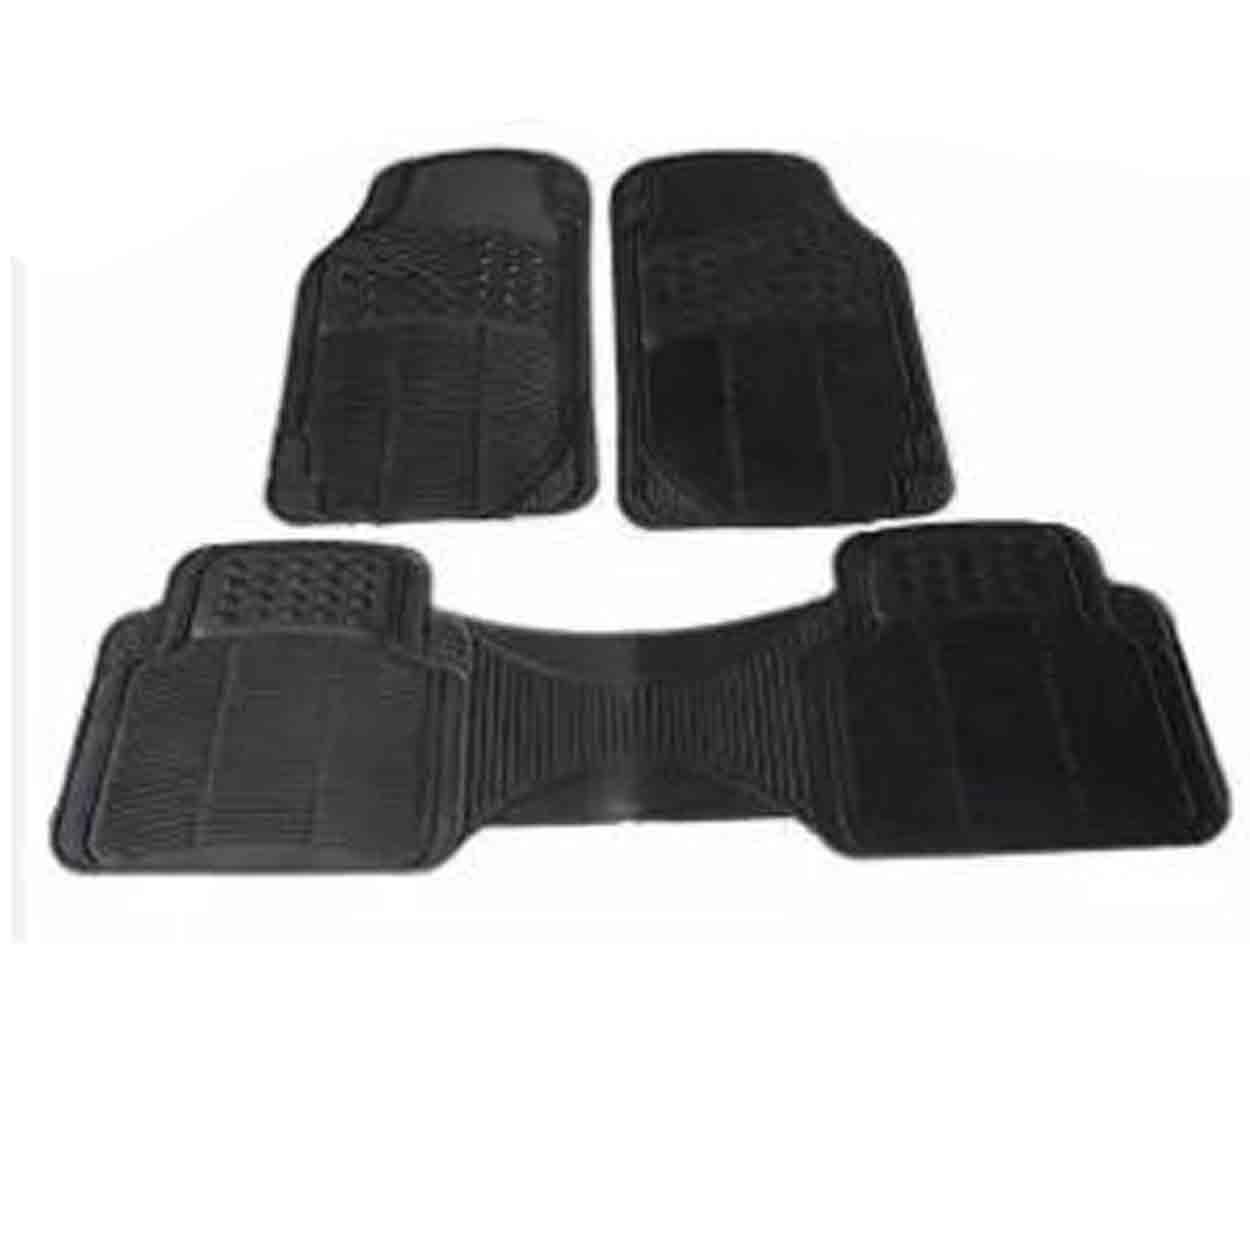 Car Mat floor guard protection 3PCS Toyota Mitsubishi Honda Nissan Ford  Isuzu Kia BMW Chevrolet Hyundai